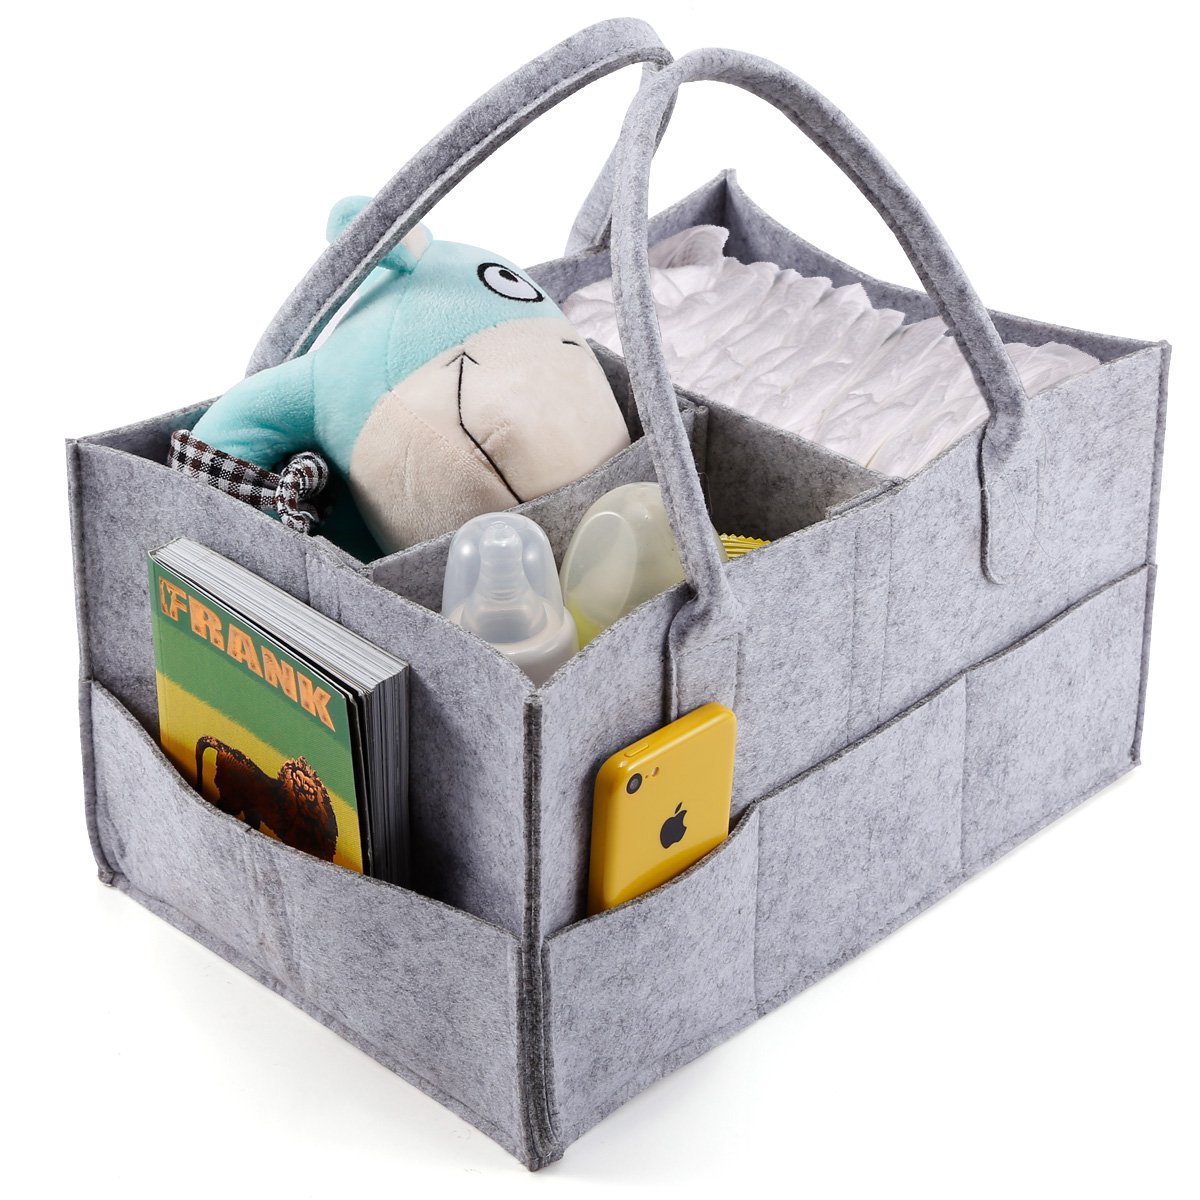 Anladia 3 Compartments Portable Baby Organizer Bag Diaper Nappy Bottle Changing Divider Storage Handbag Grey